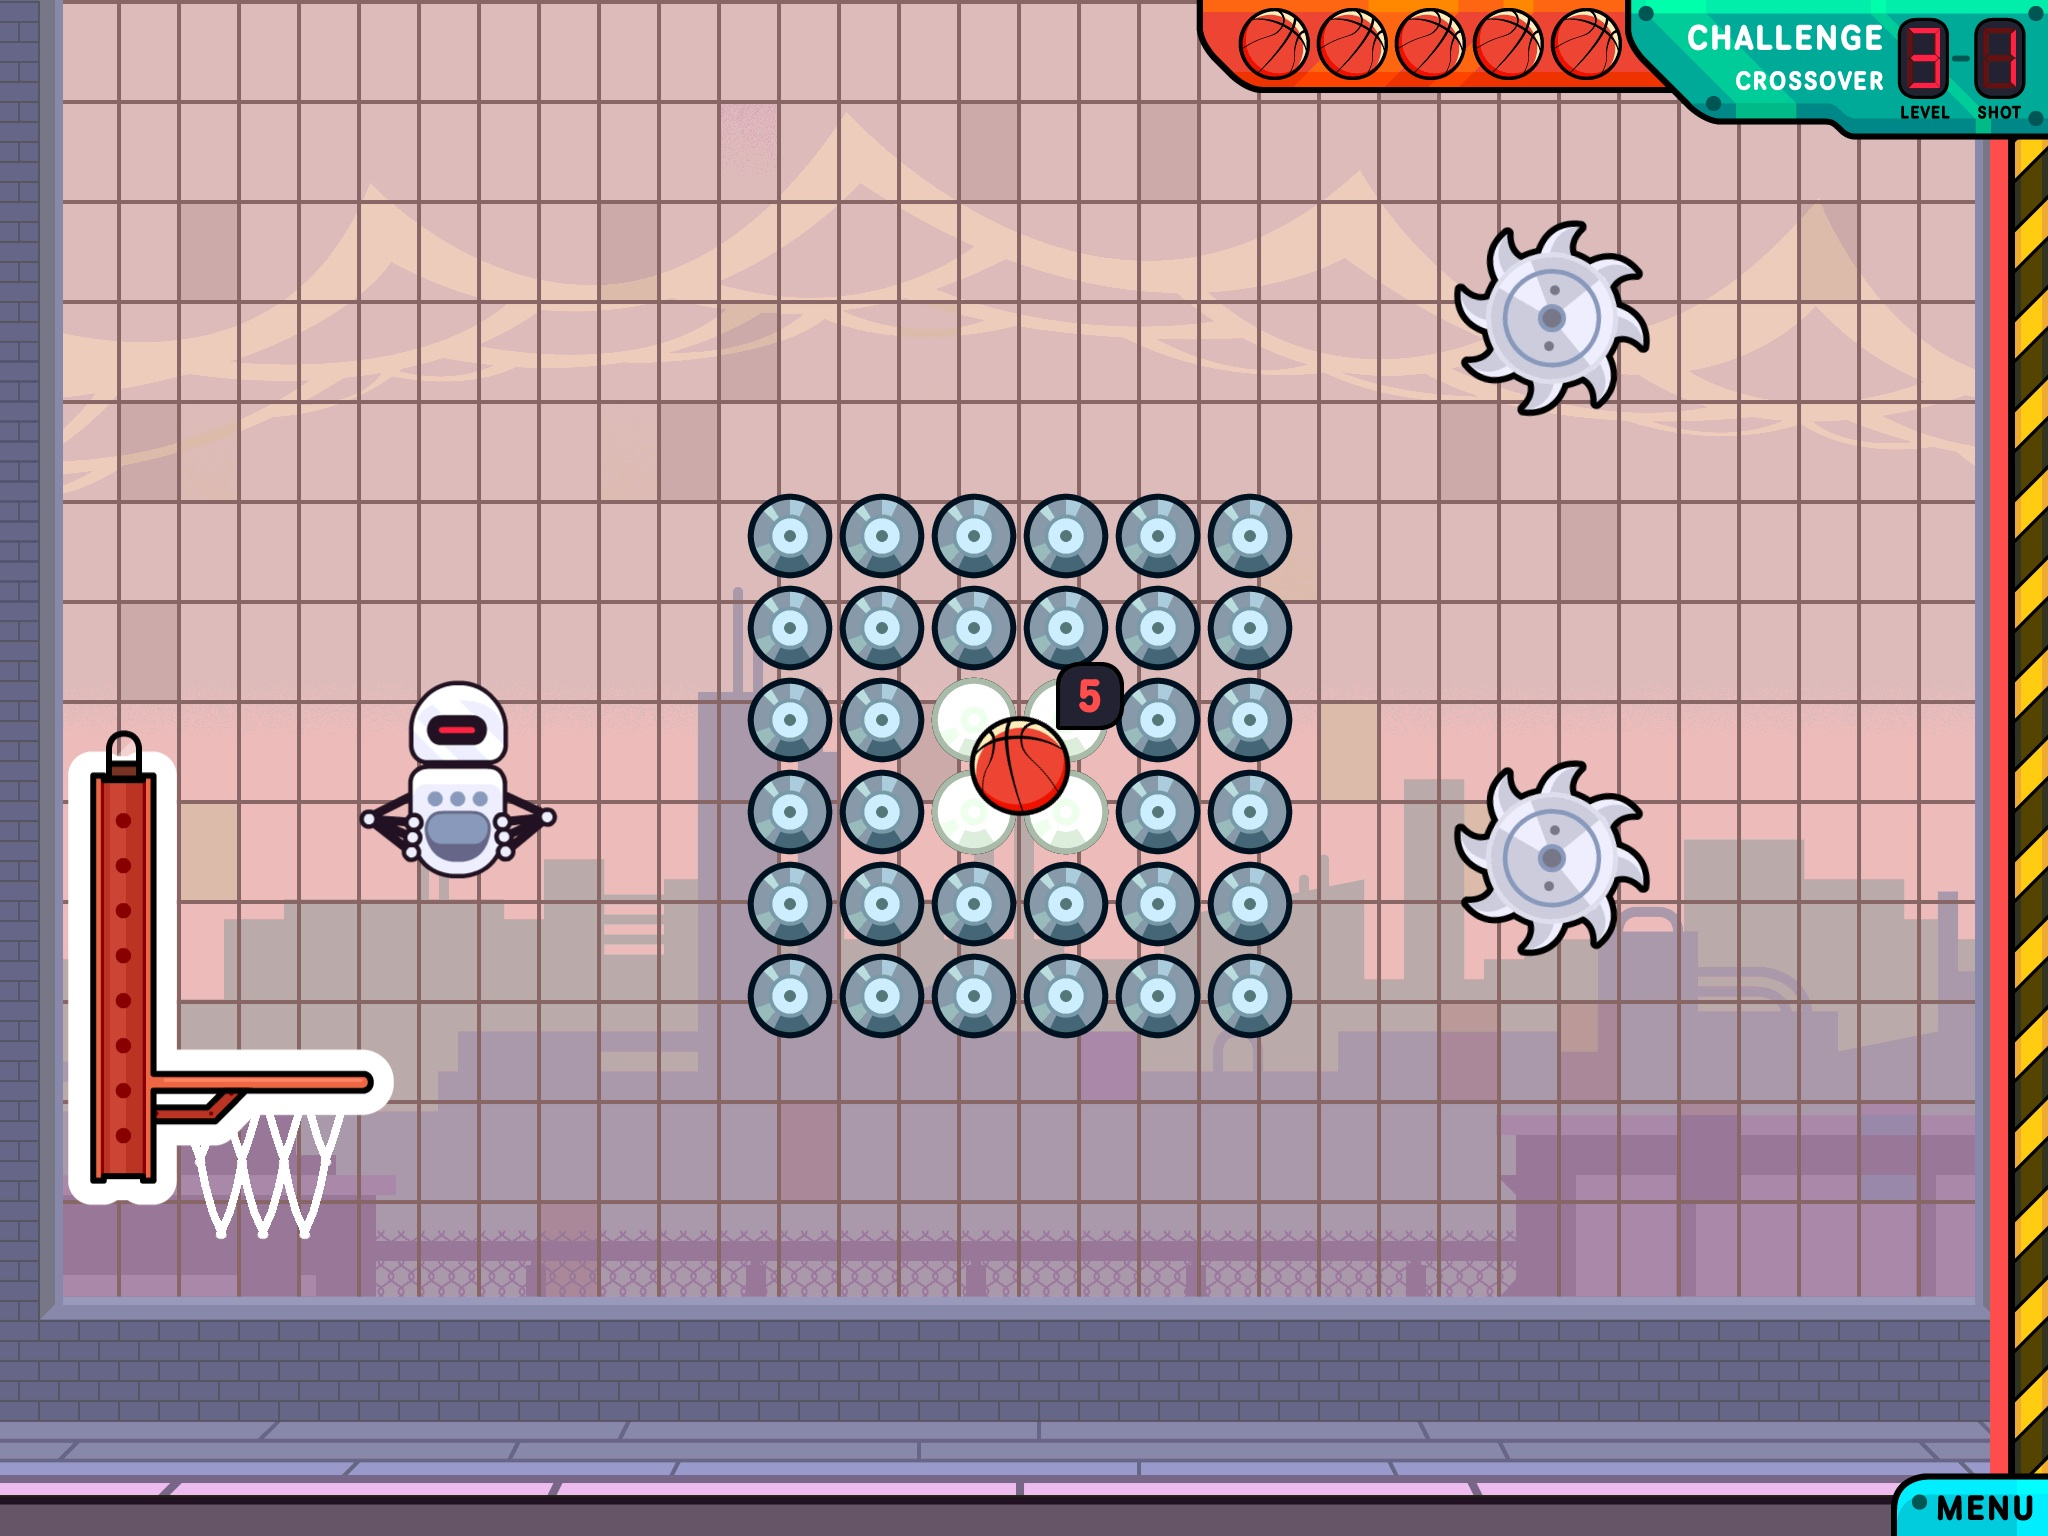 Gasketball Promises A Puzzling Mix Of Bank Shots And Buzz Saws